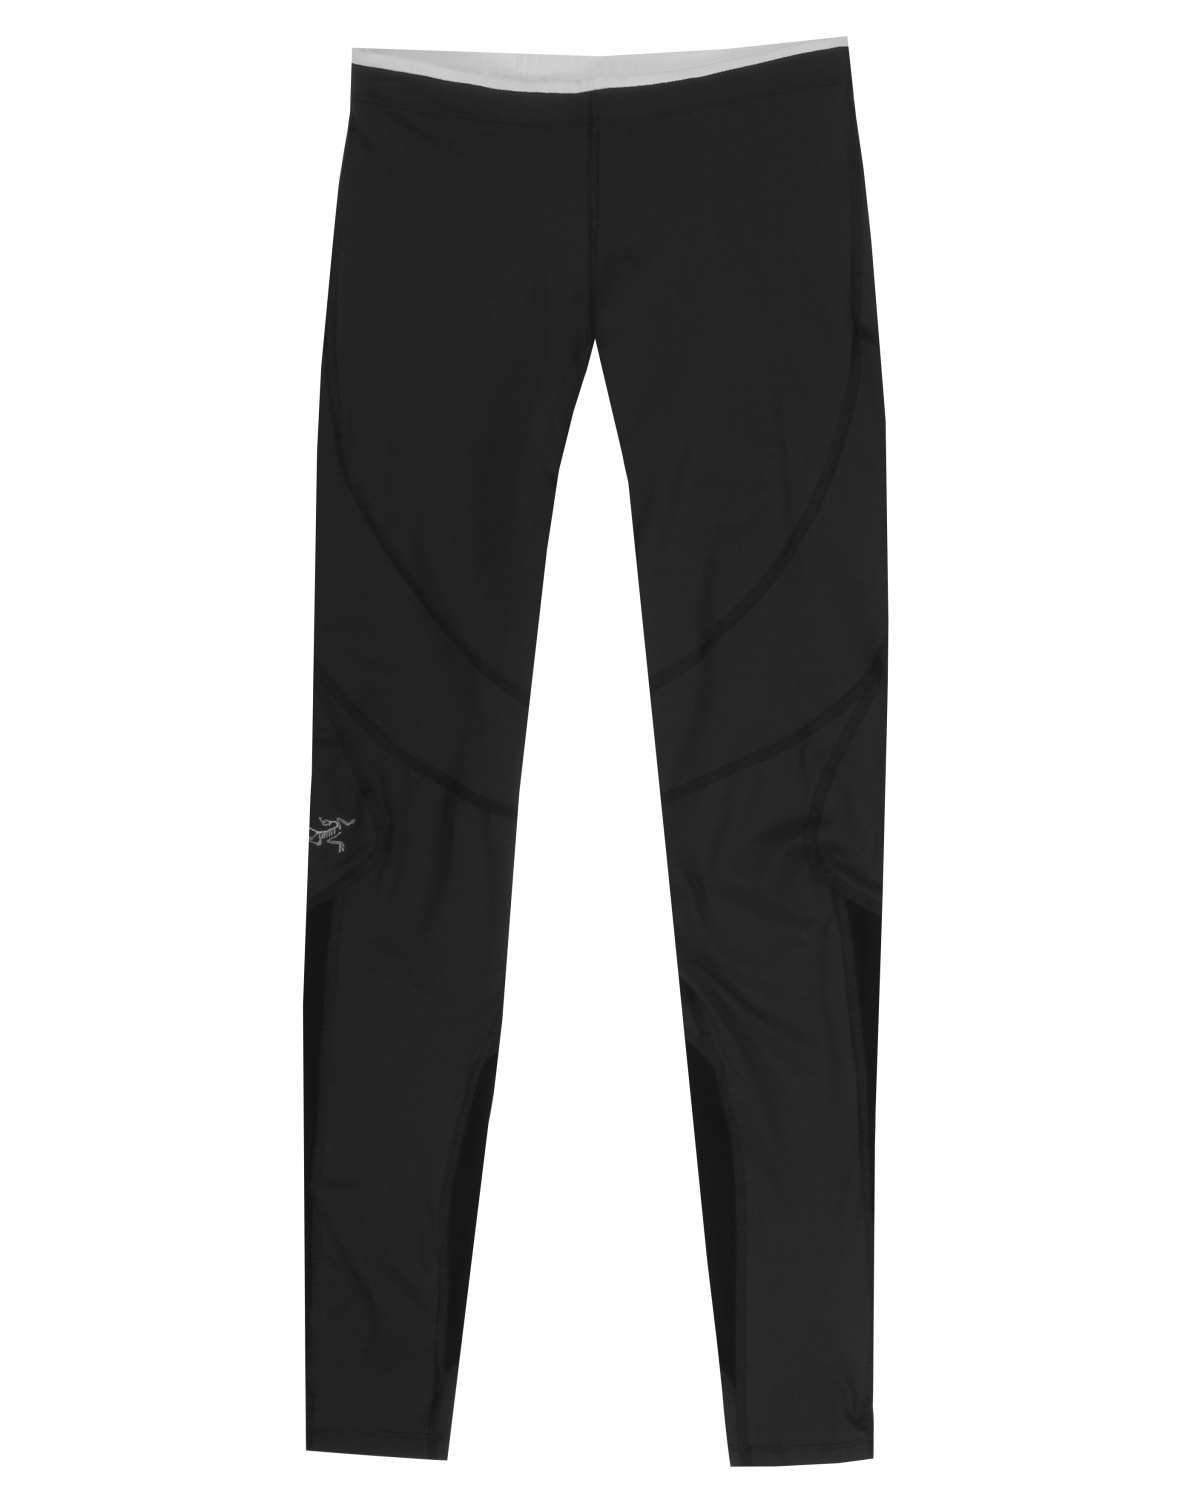 Cita Tight Women's